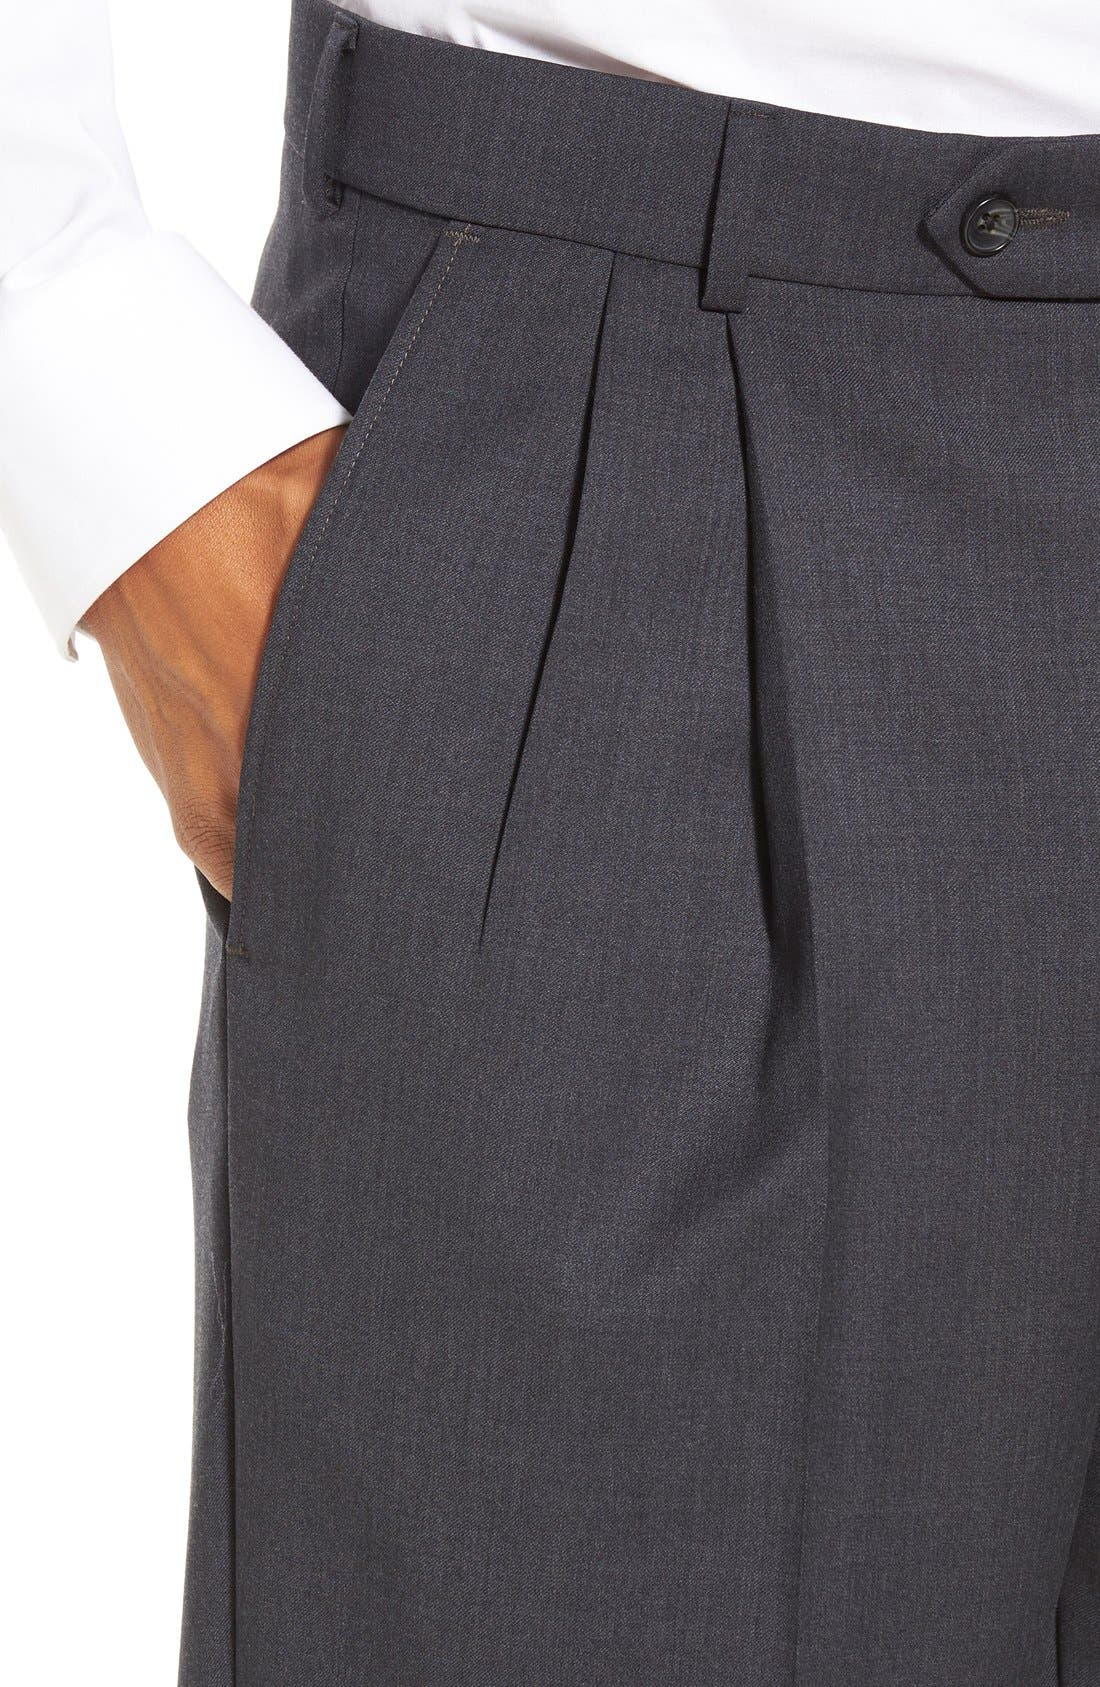 Pleated Solid Wool Trousers,                             Alternate thumbnail 43, color,